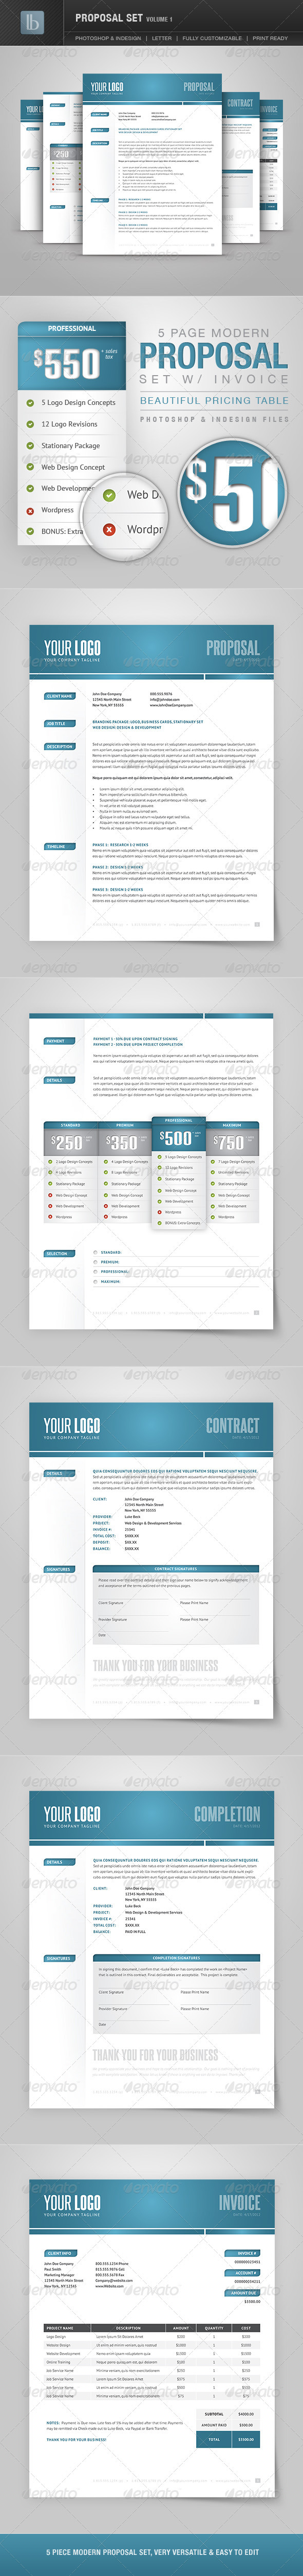 GraphicRiver Proposal Set Volume 1 2408728